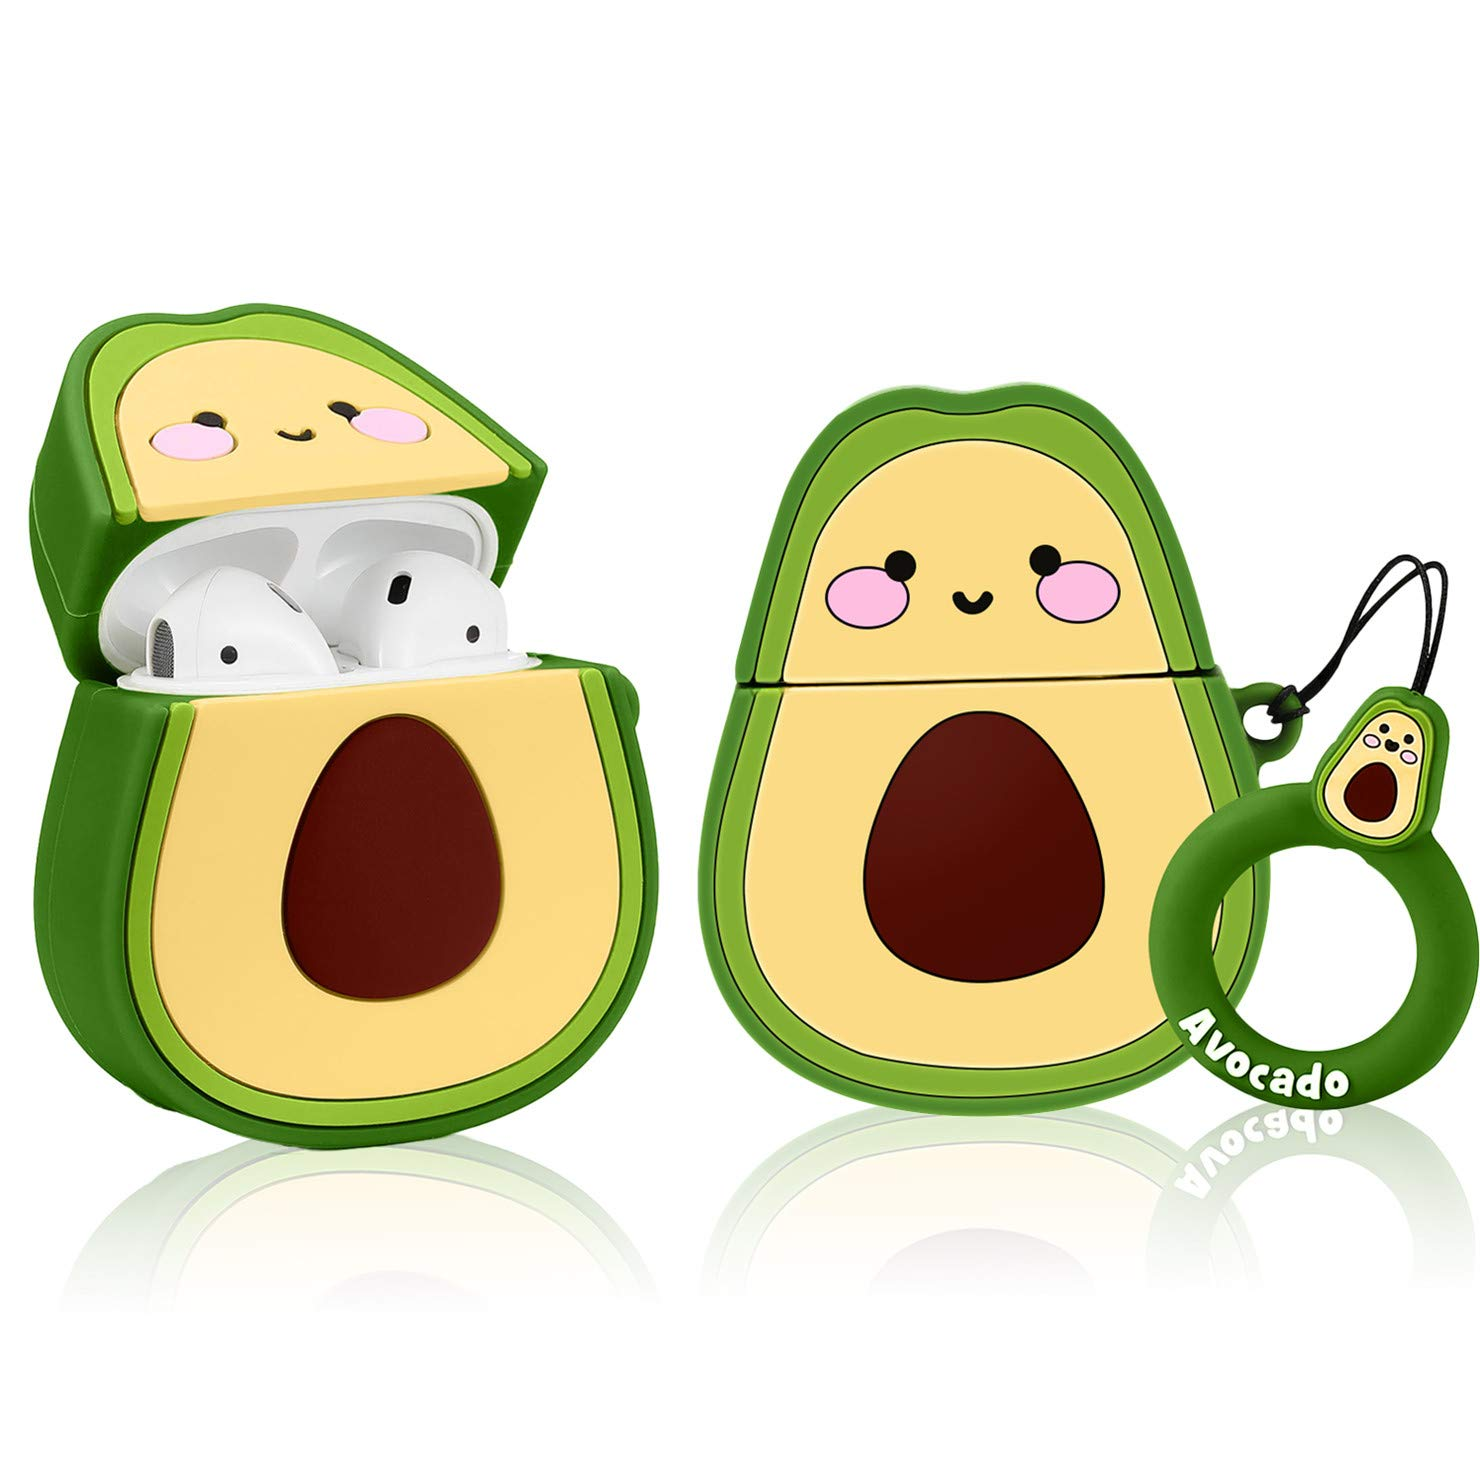 Mulafnxal Compatible with Airpods 1&2 Case,Cute Funny Cartoon Fruit Character Silicone Airpod Cover,Kawaii Fun Design Skin,Fashion Animal Designer Cases for Girls Kids Teens Boys Air pods(Avocado)